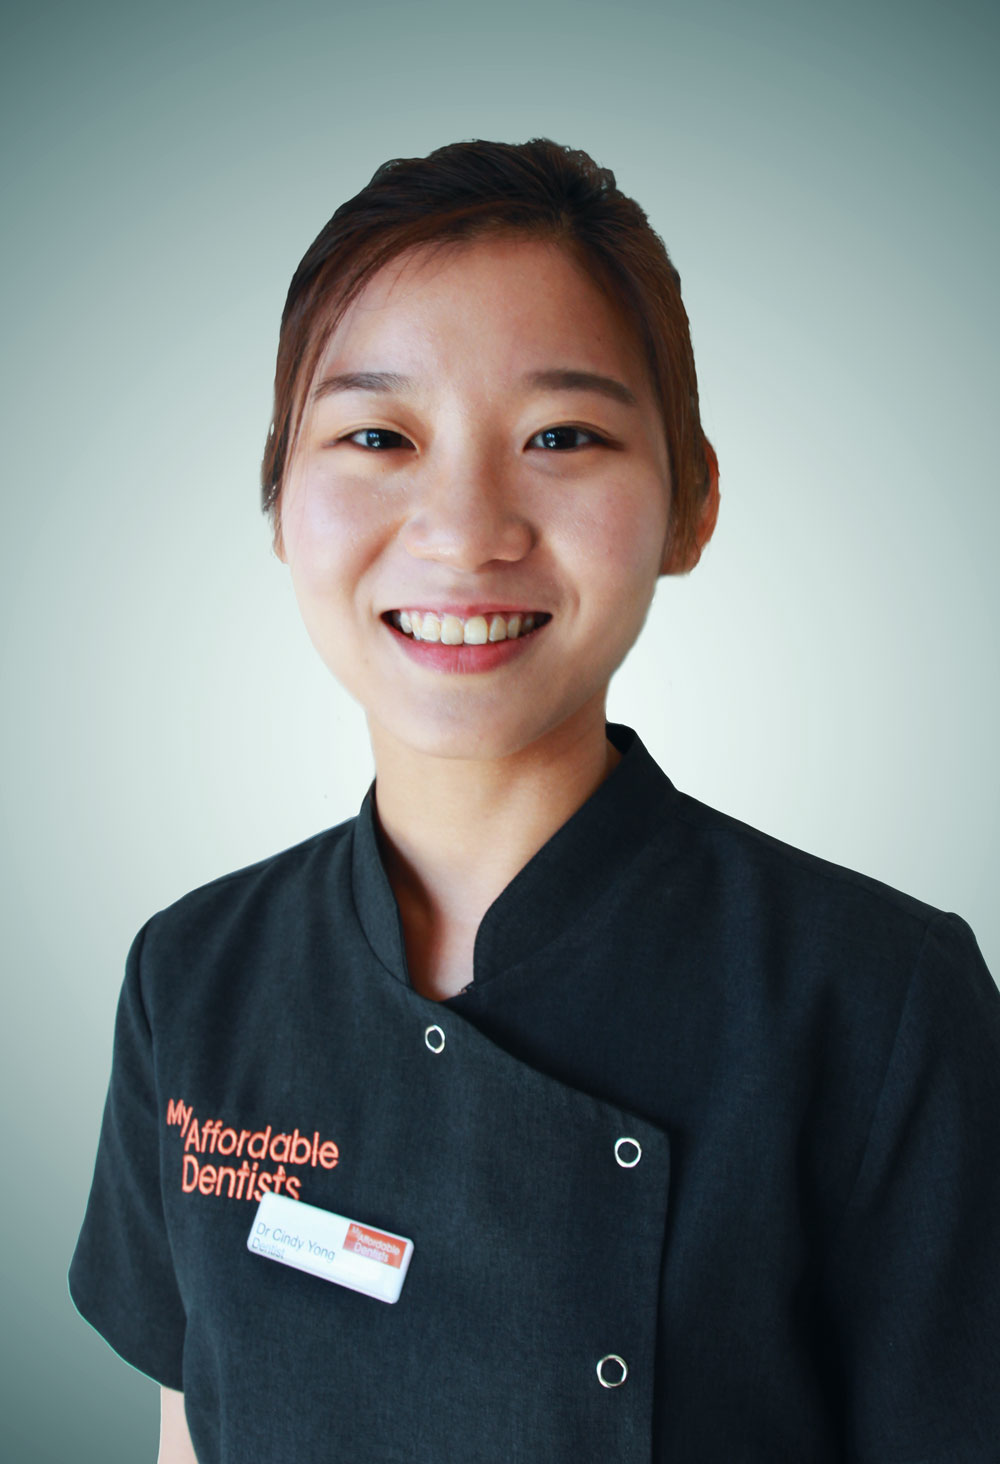 Dr Cindy Yong My Affordable Dentists